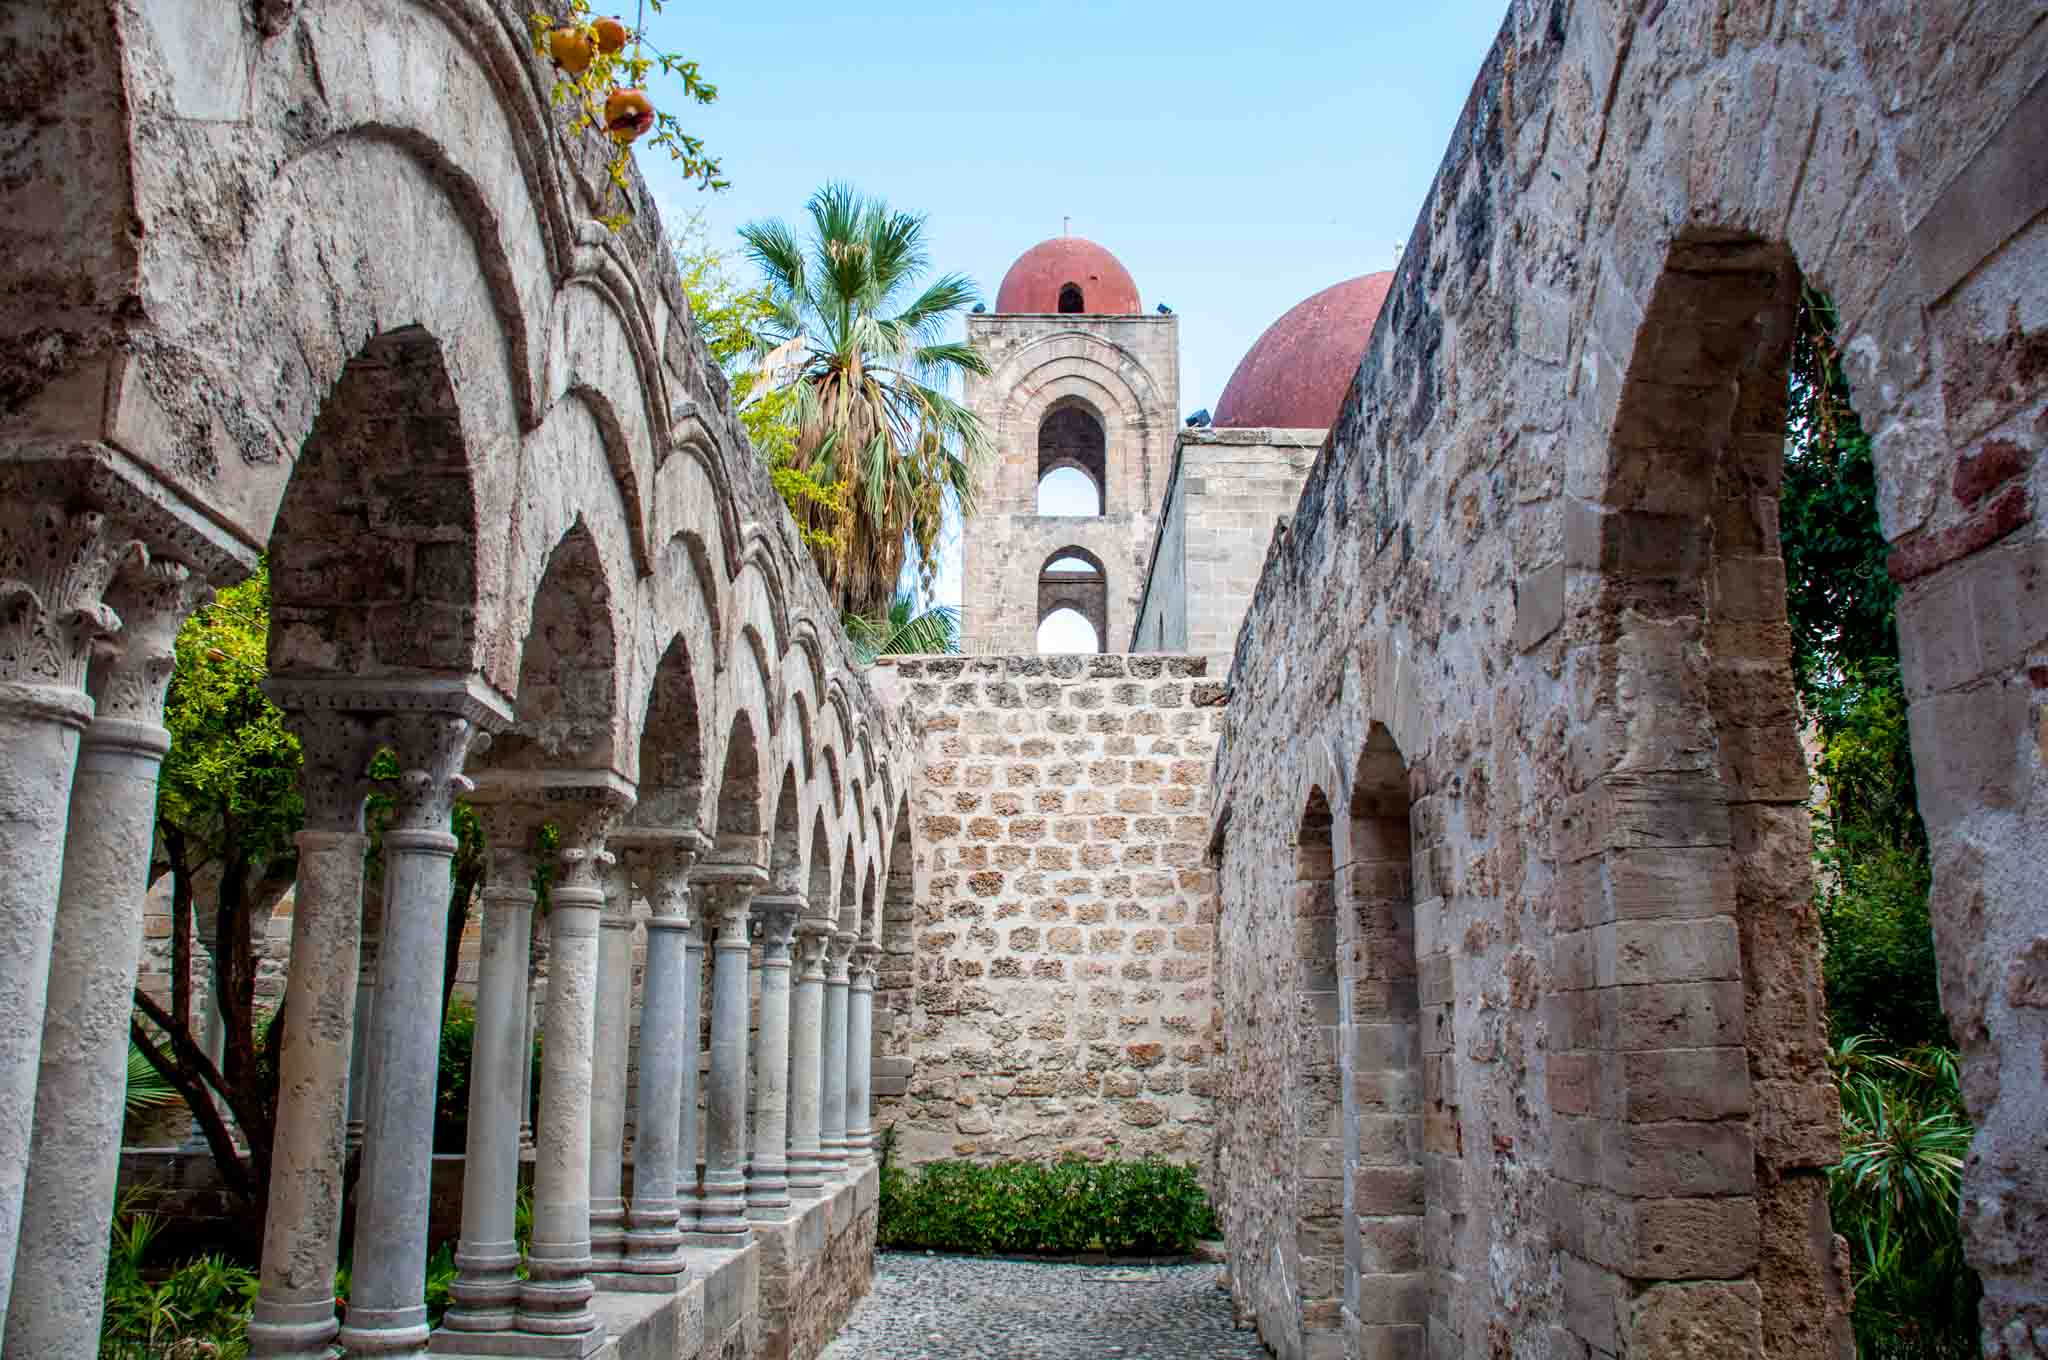 Arches in courtyard of St. John of the Hermits and tower topped with red dome